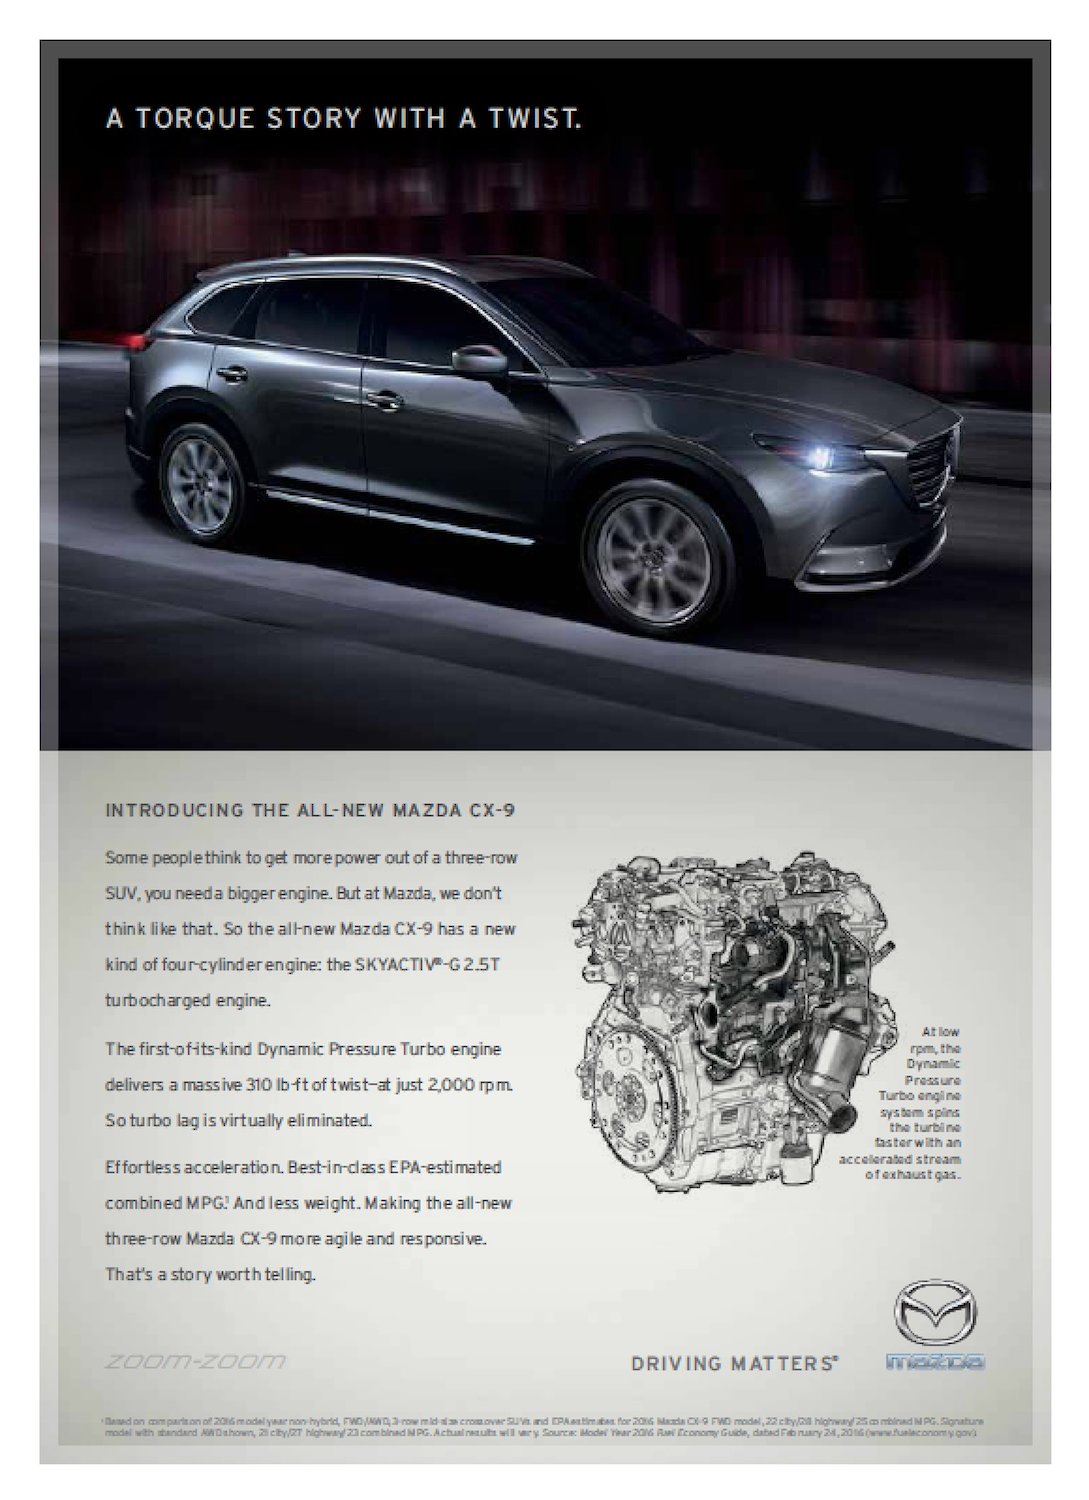 Mazda_CX9_ad_1500_Motortrend.png